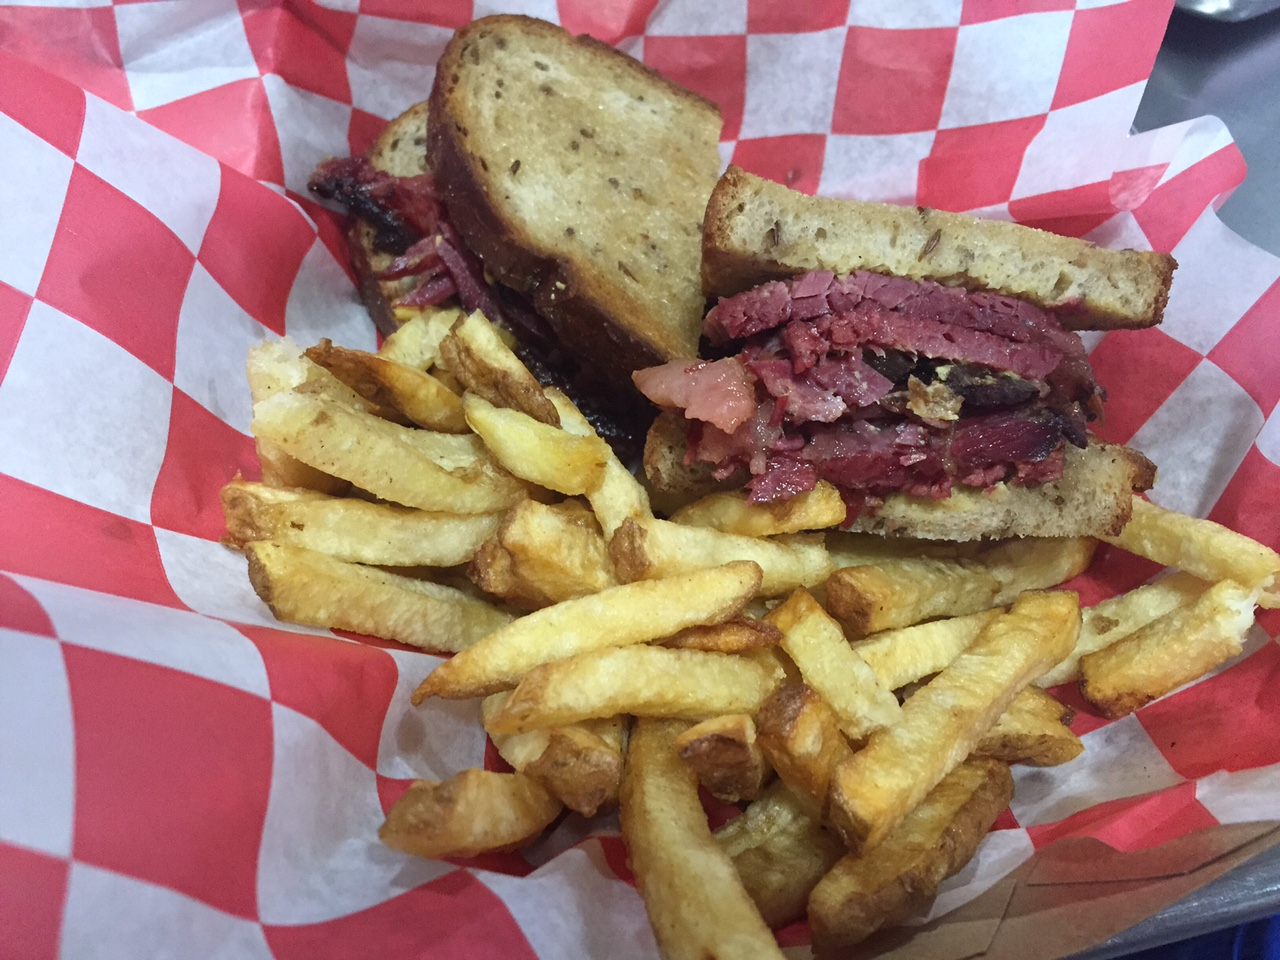 Montreal smoked meat sandwich with fries